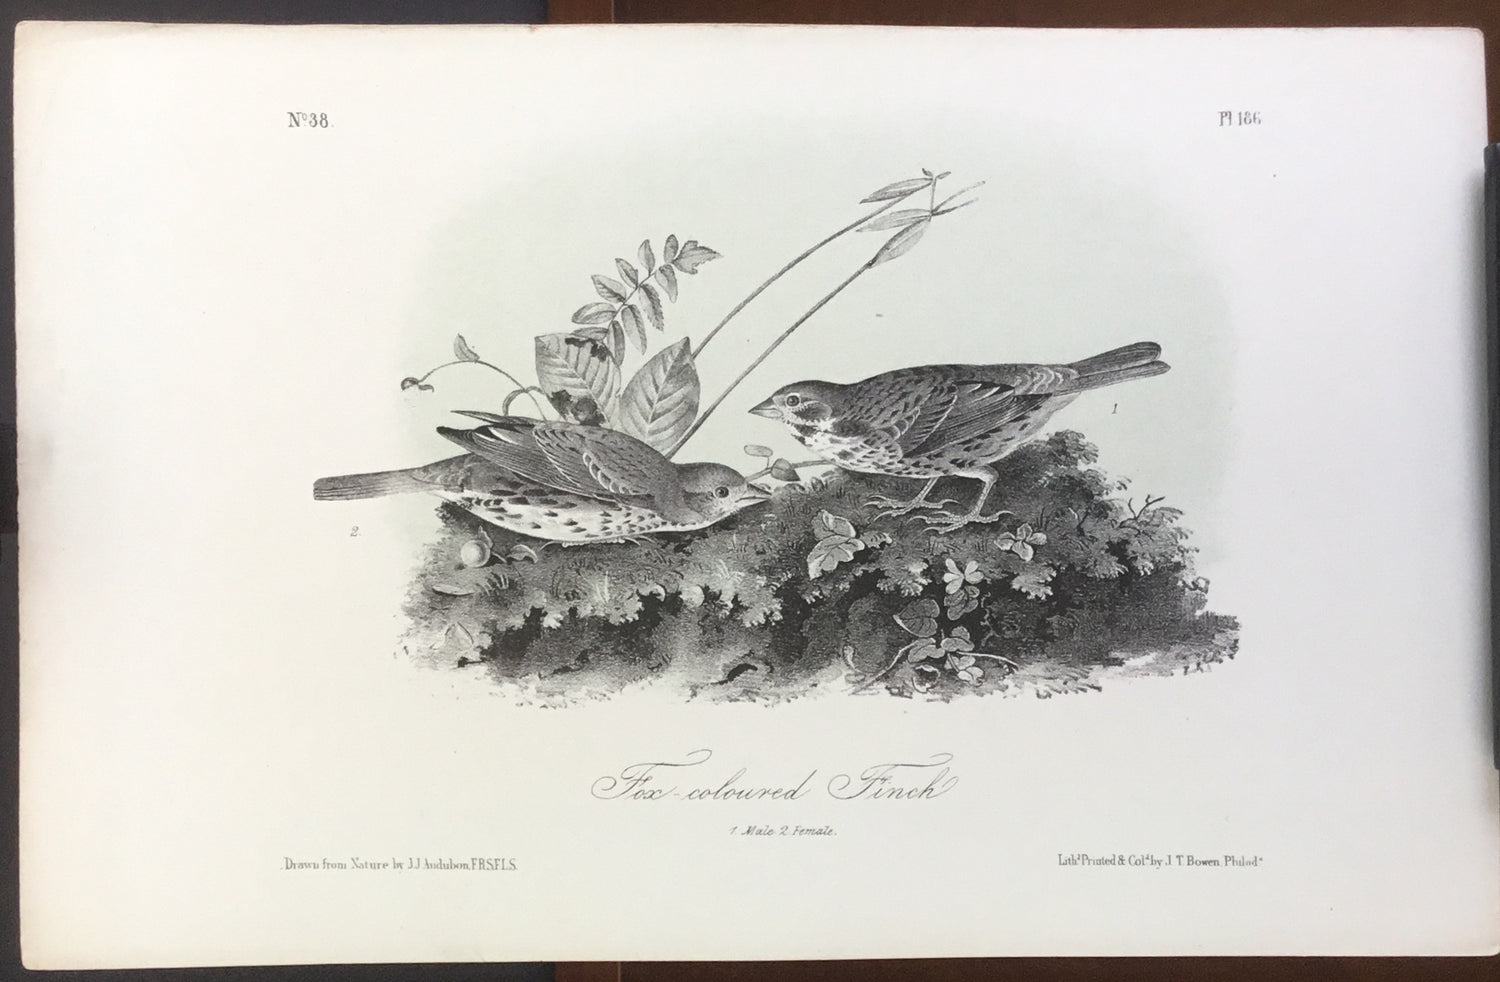 Audubon Octavo Fox-colored Finch (2), plate 186, uncolored test sheet, 7 x 11